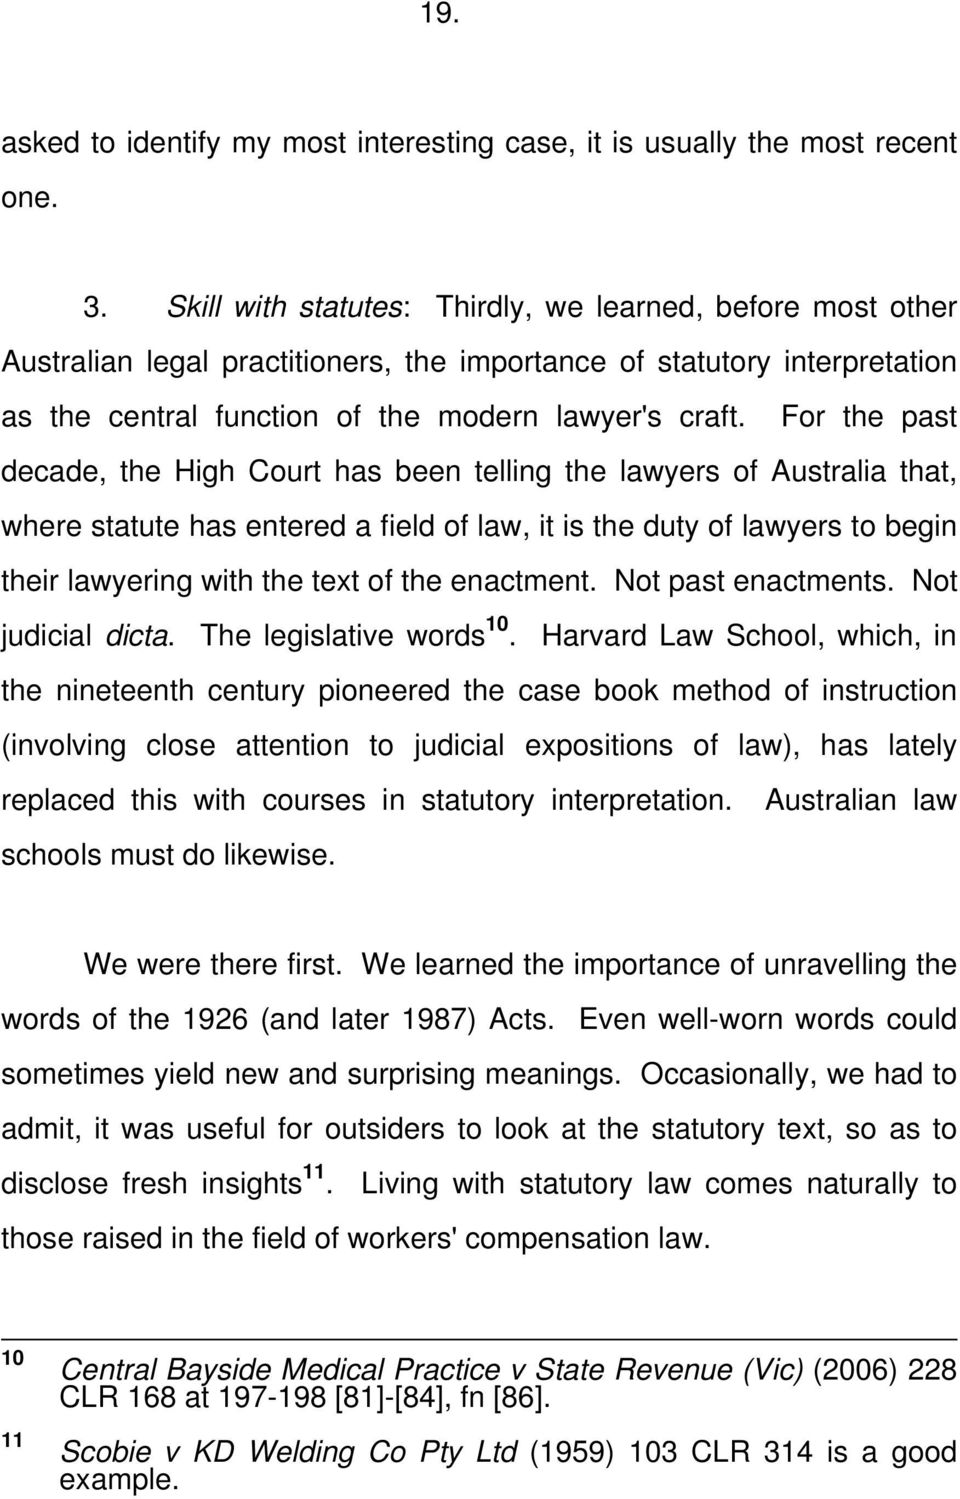 For the past decade, the High Court has been telling the lawyers of Australia that, where statute has entered a field of law, it is the duty of lawyers to begin their lawyering with the text of the